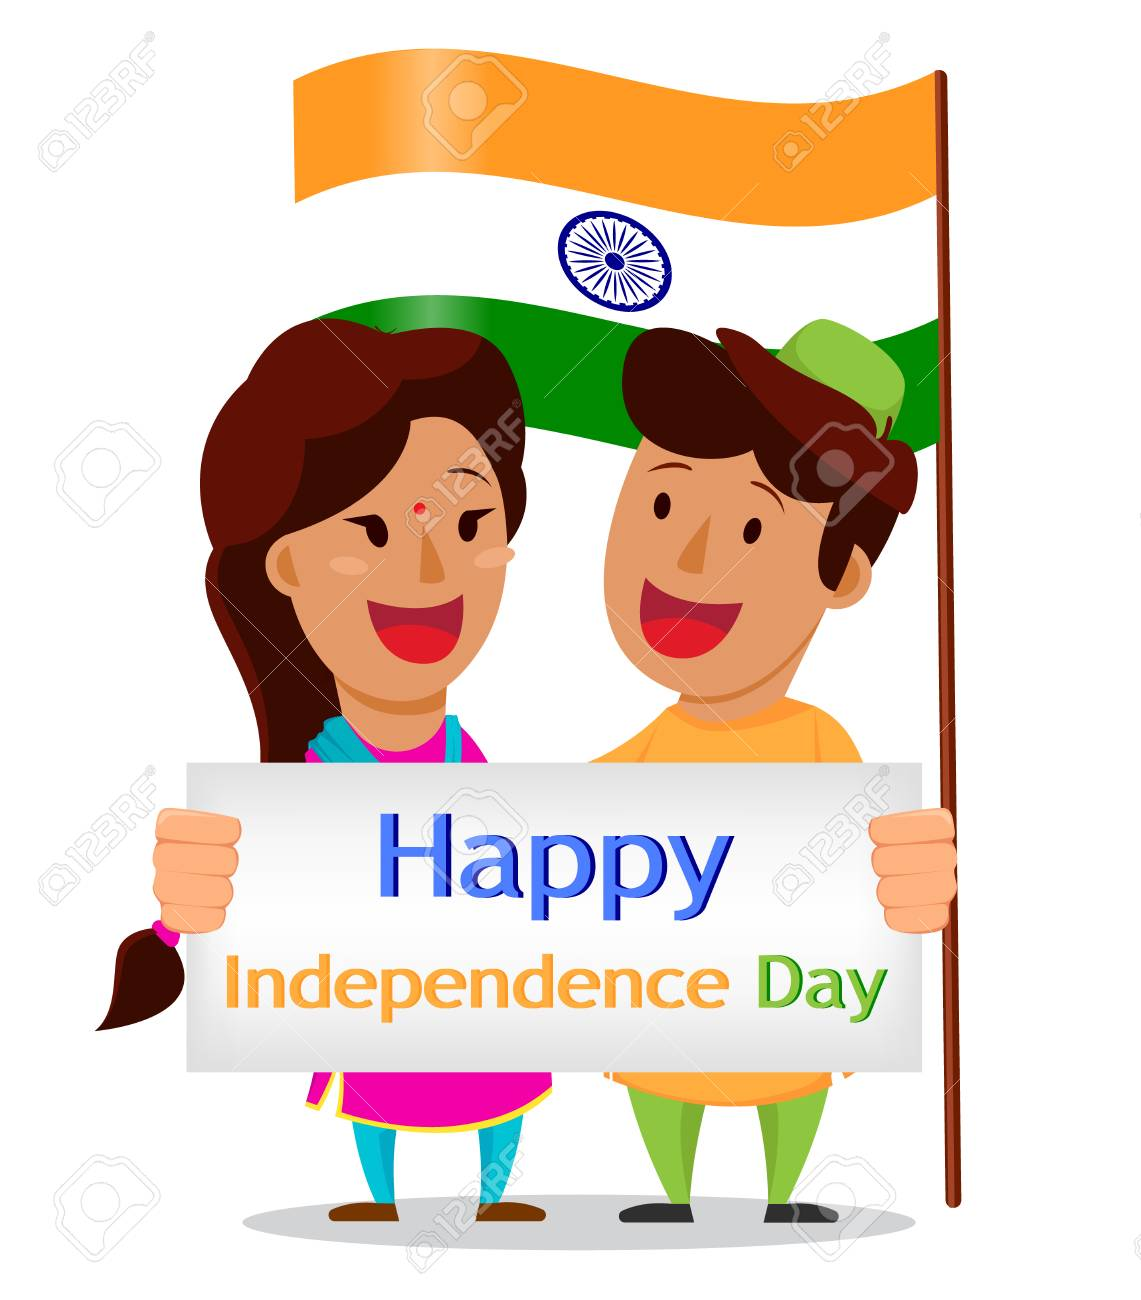 Independence day in india greeting card with funny cartoon greeting card with funny cartoon characters indian man and woman kristyandbryce Gallery